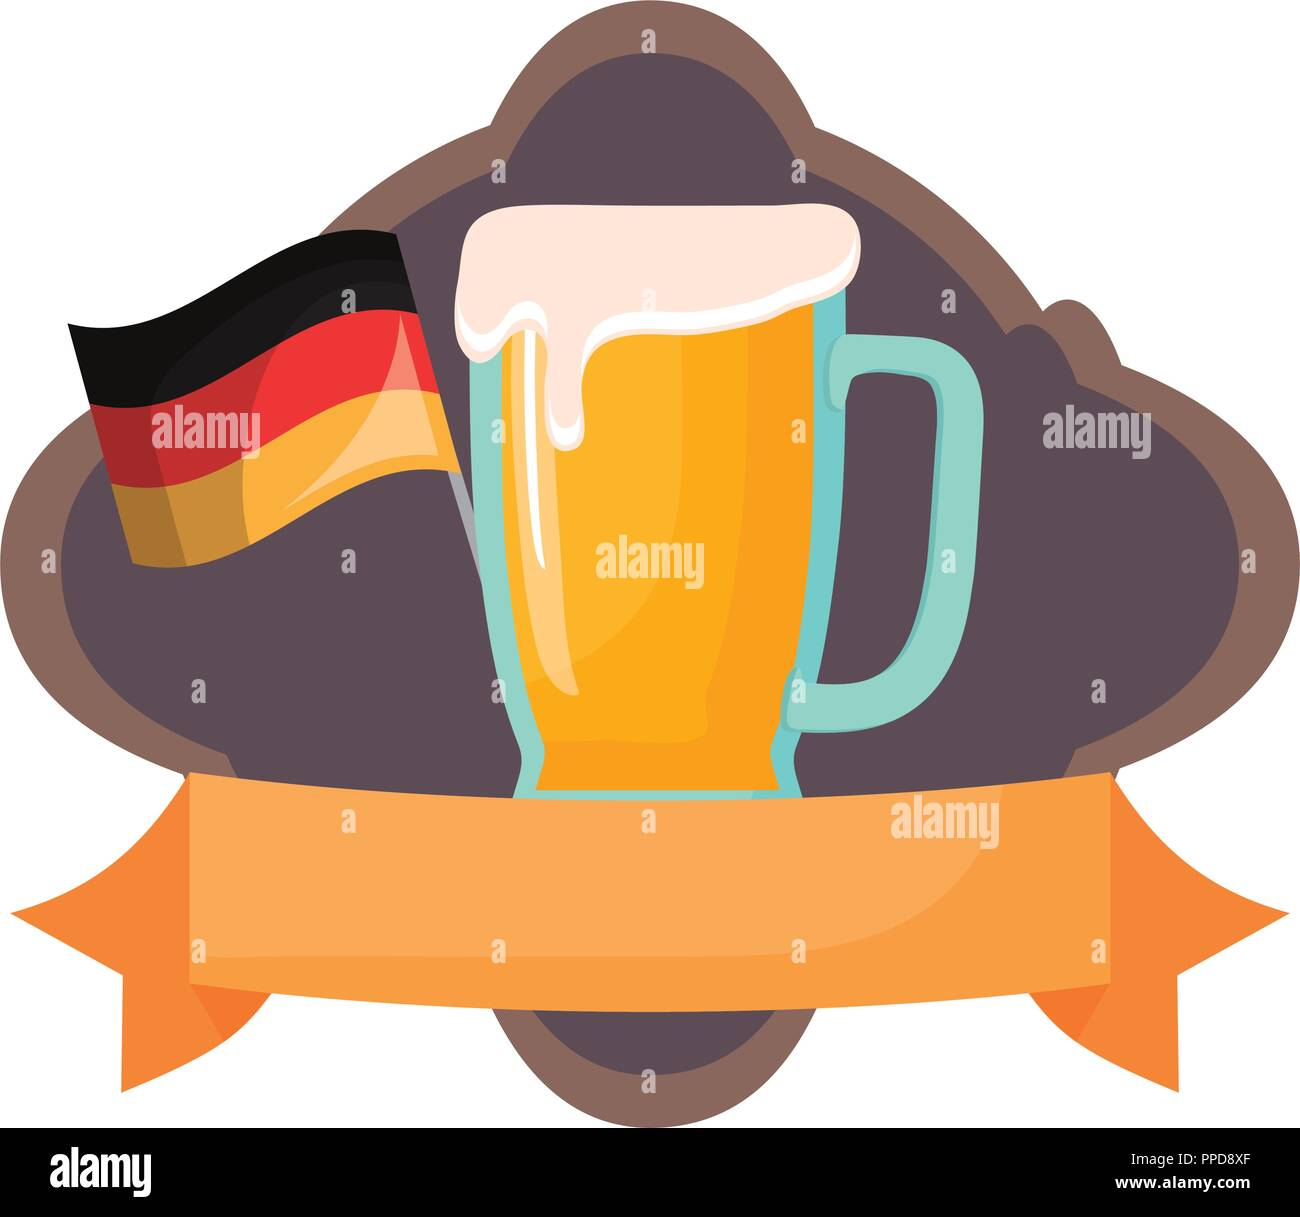 oktoberfest germany flag beer glass emblem vector illustration - Stock Image